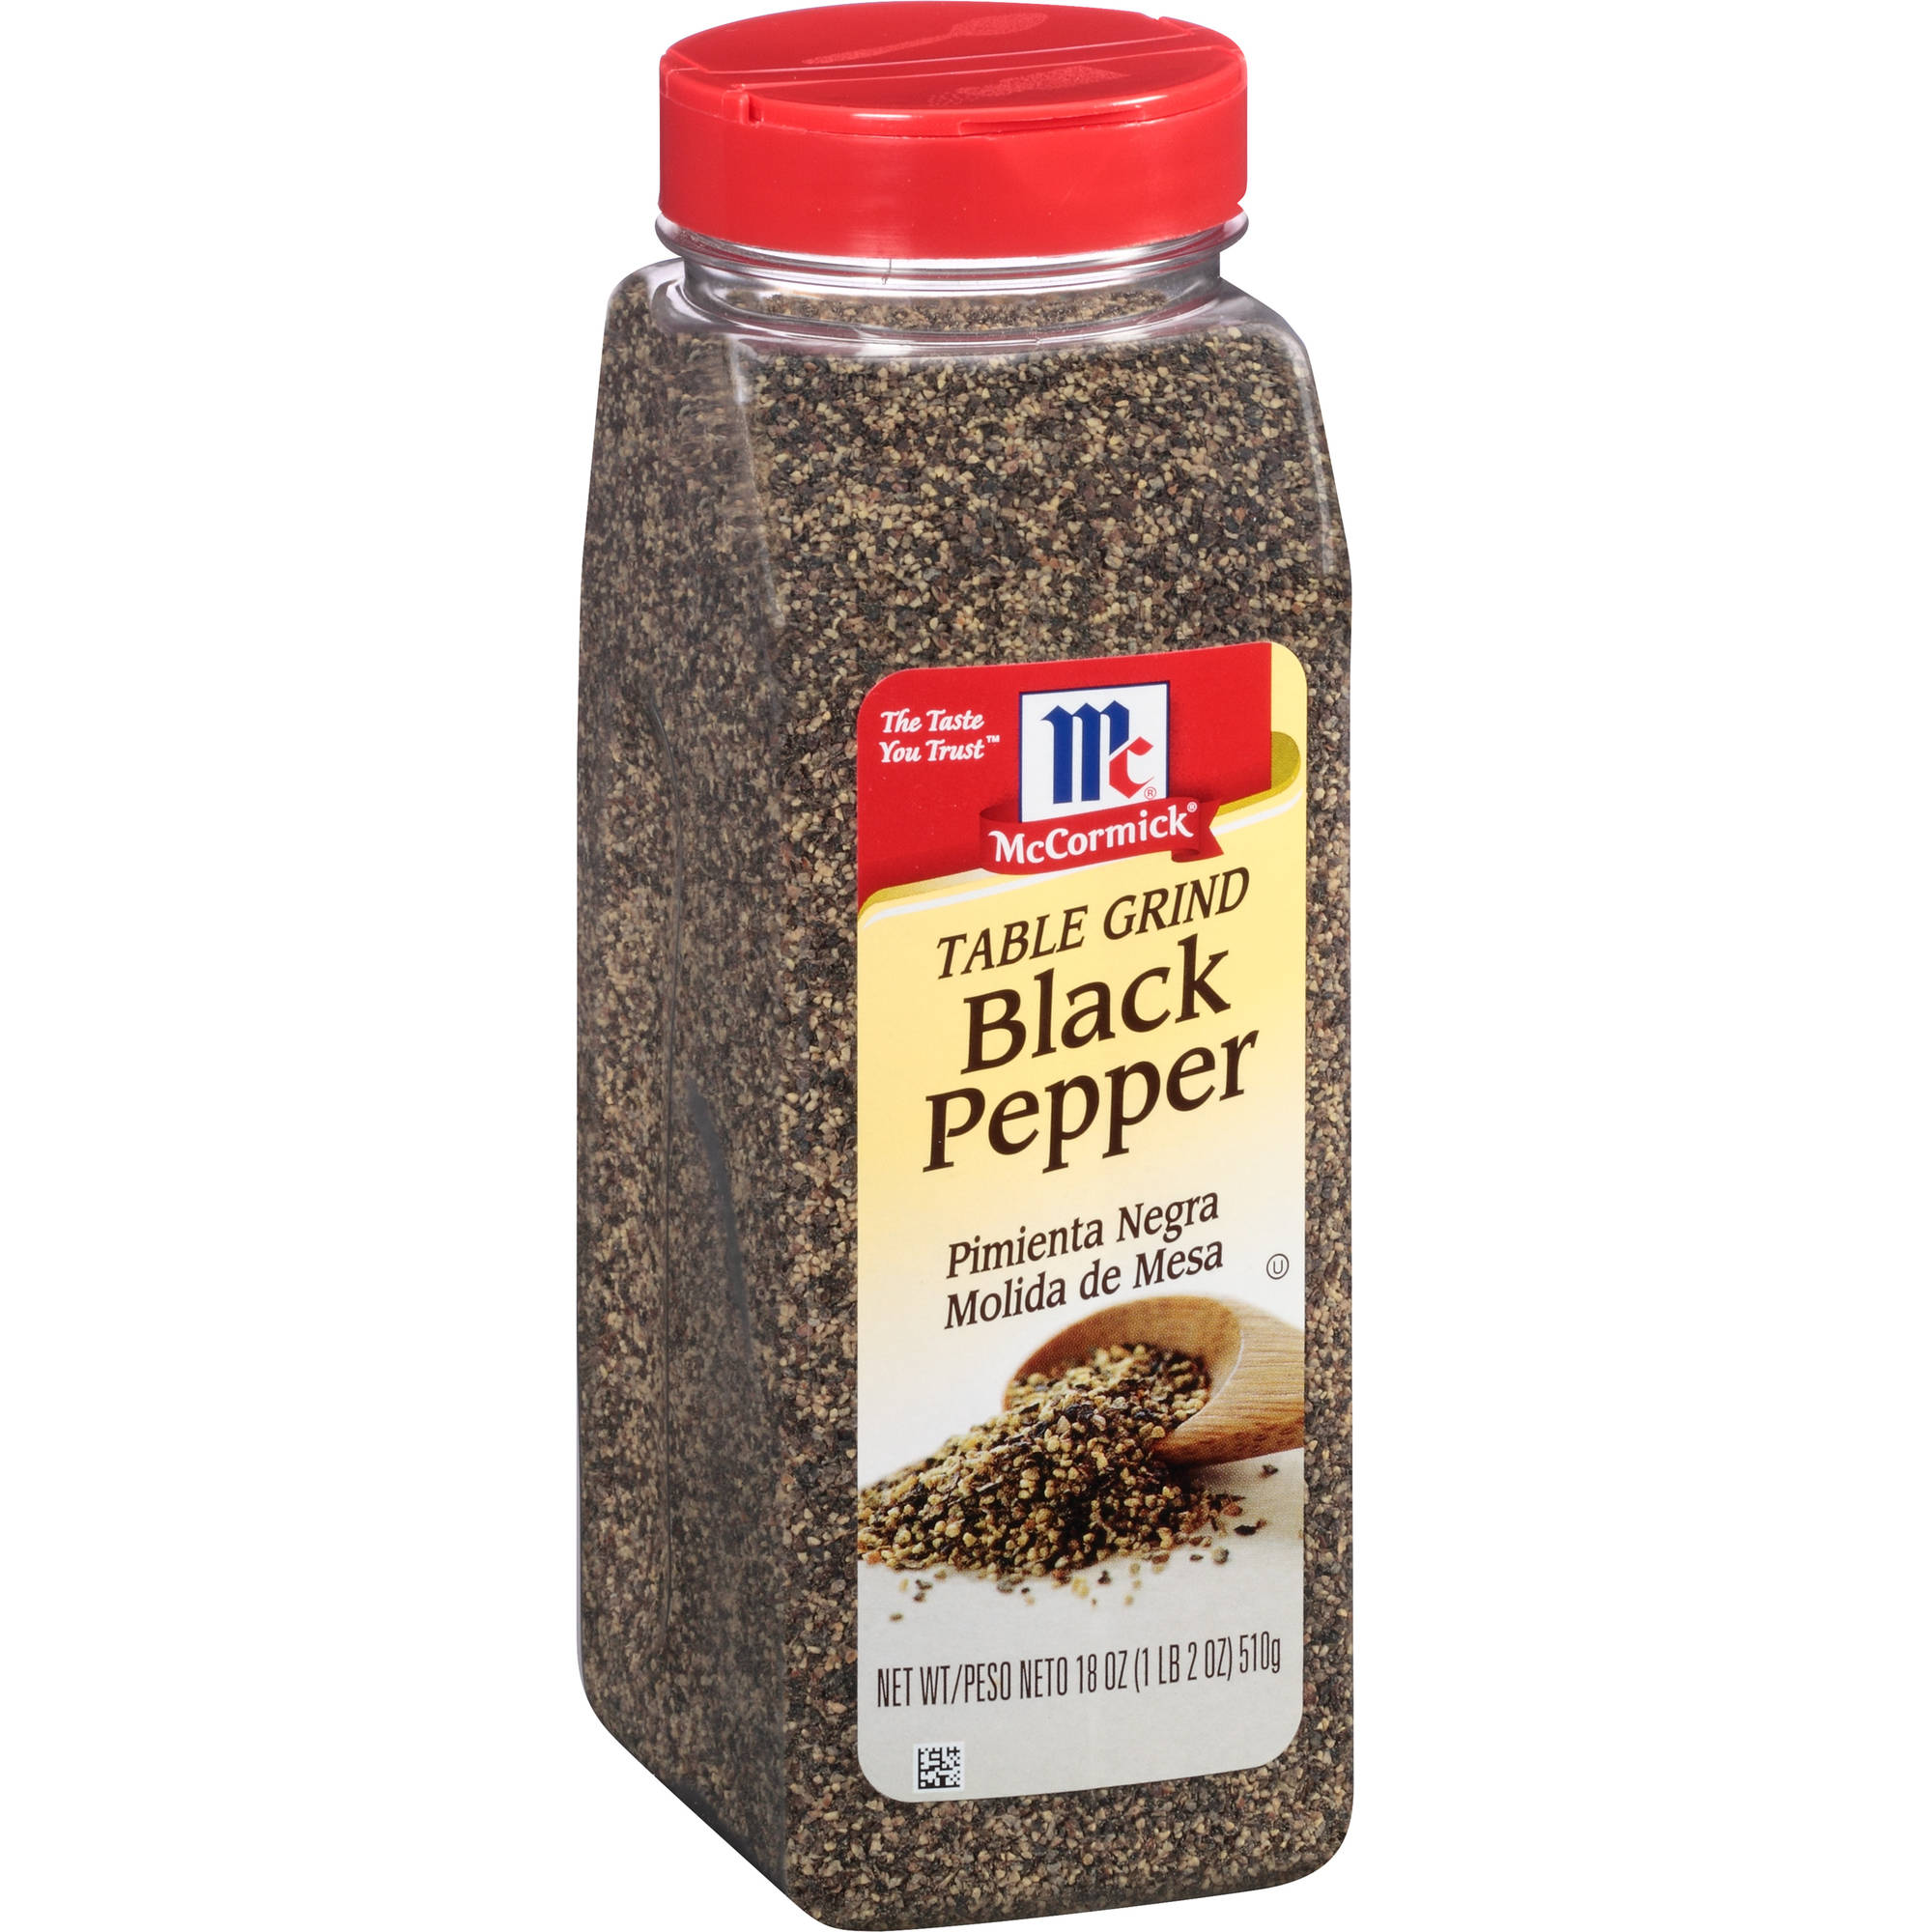 McCormick Table Grind Black Pepper, 18 oz